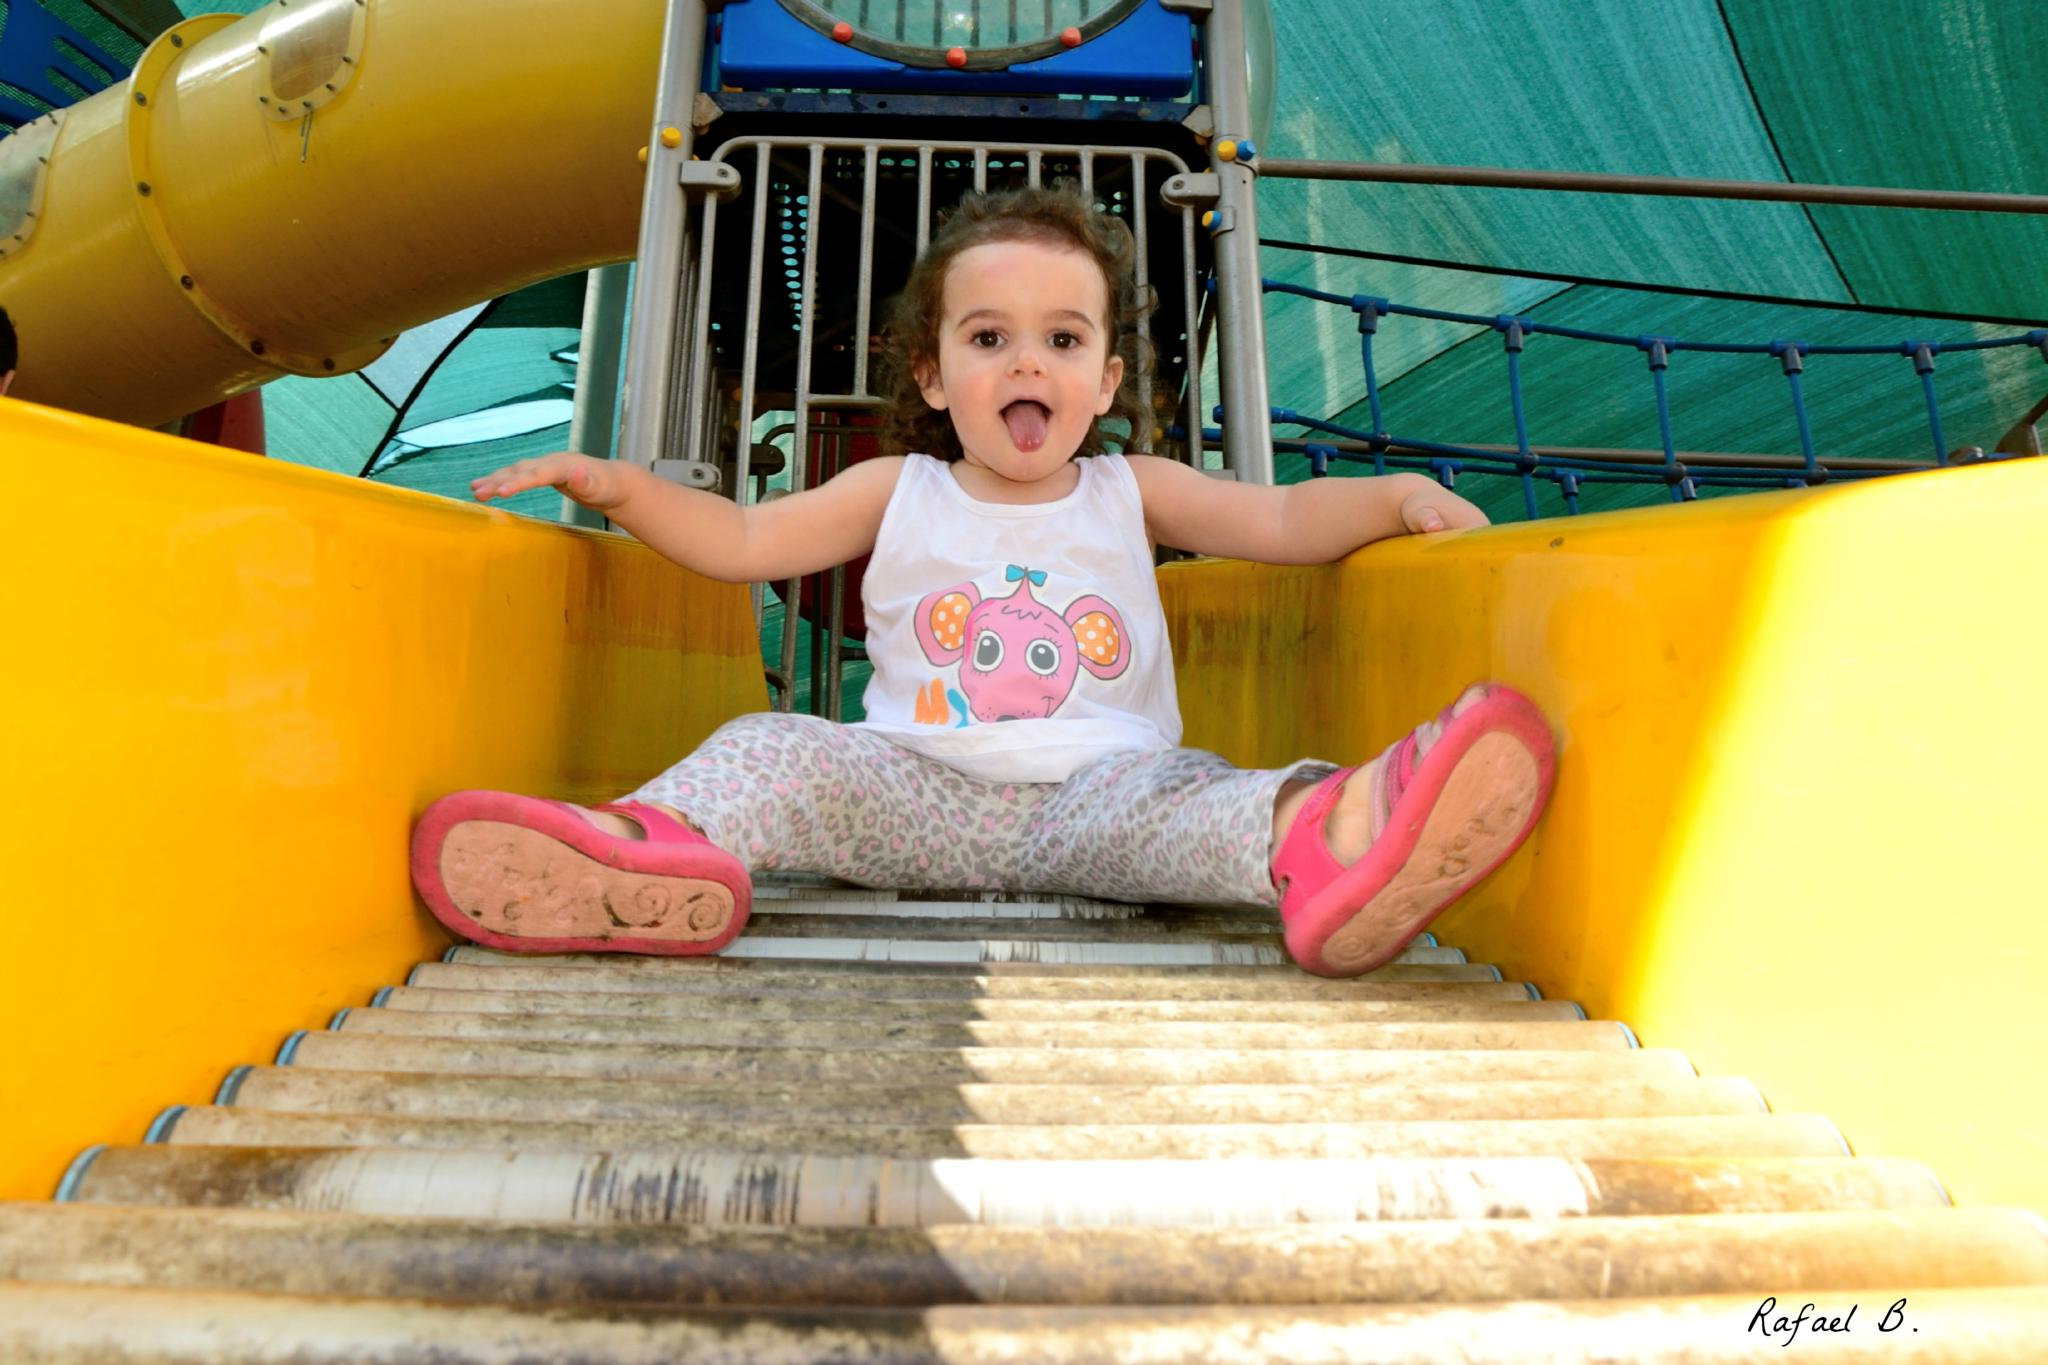 Princess on the slide by raymond.r.borenstein